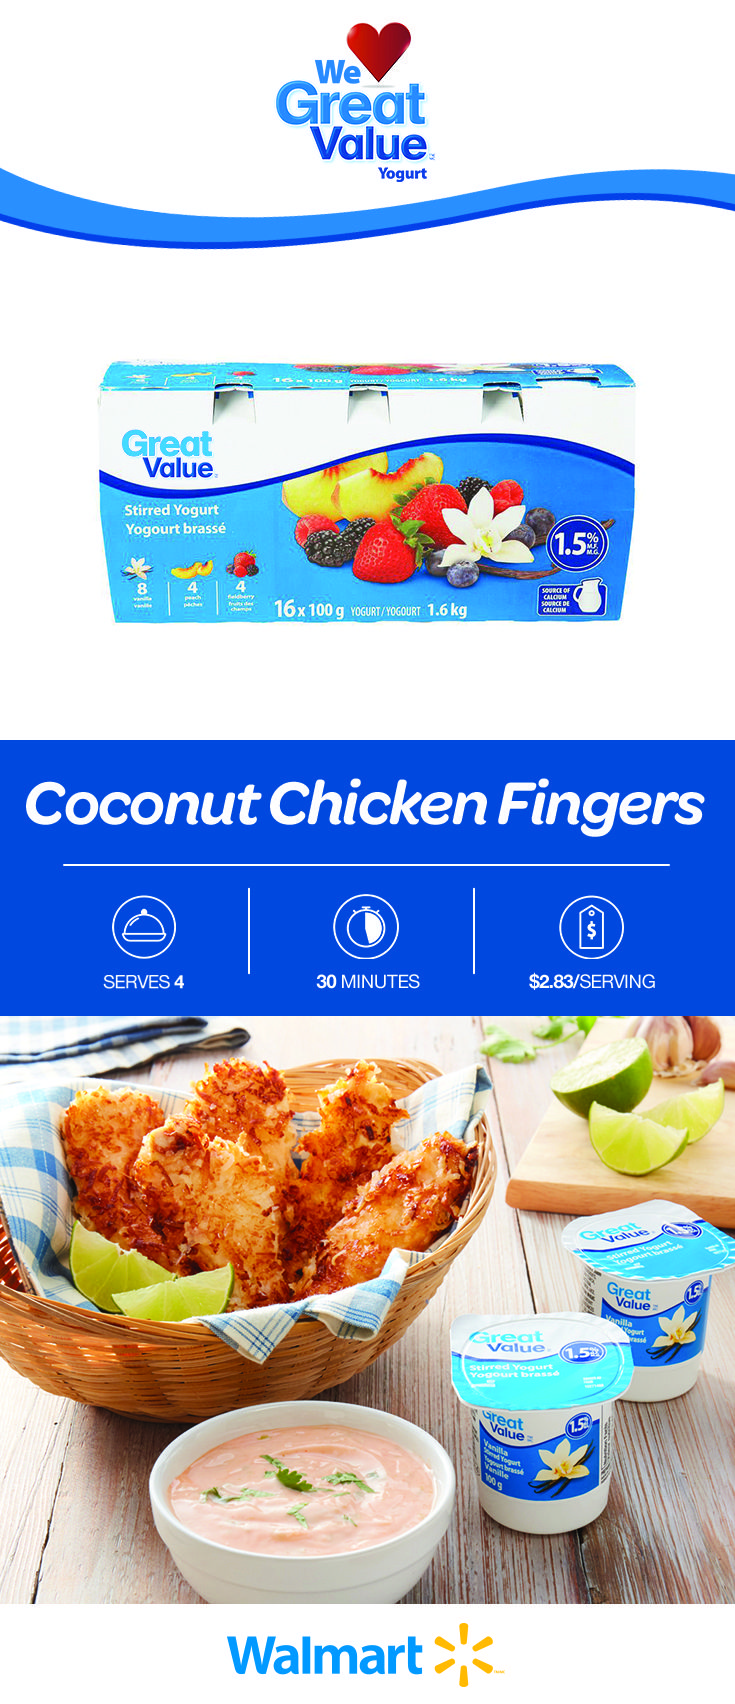 This is a great dinner treat the kids will love: coconut chicken fingers. Use our Great Value Yogurt as a marinade for a tangy twist. Only $2.83 per serving. Find this affordable recipe by clicking the link! #chickenrecipes #coconutchicken #chickenfingers #coconutchickenfingers #chickenfingerrecipes #kidfriendlymeals #kidfriendlydinners #dinnerrecipes #easydinners #affordabledinnerrecipes